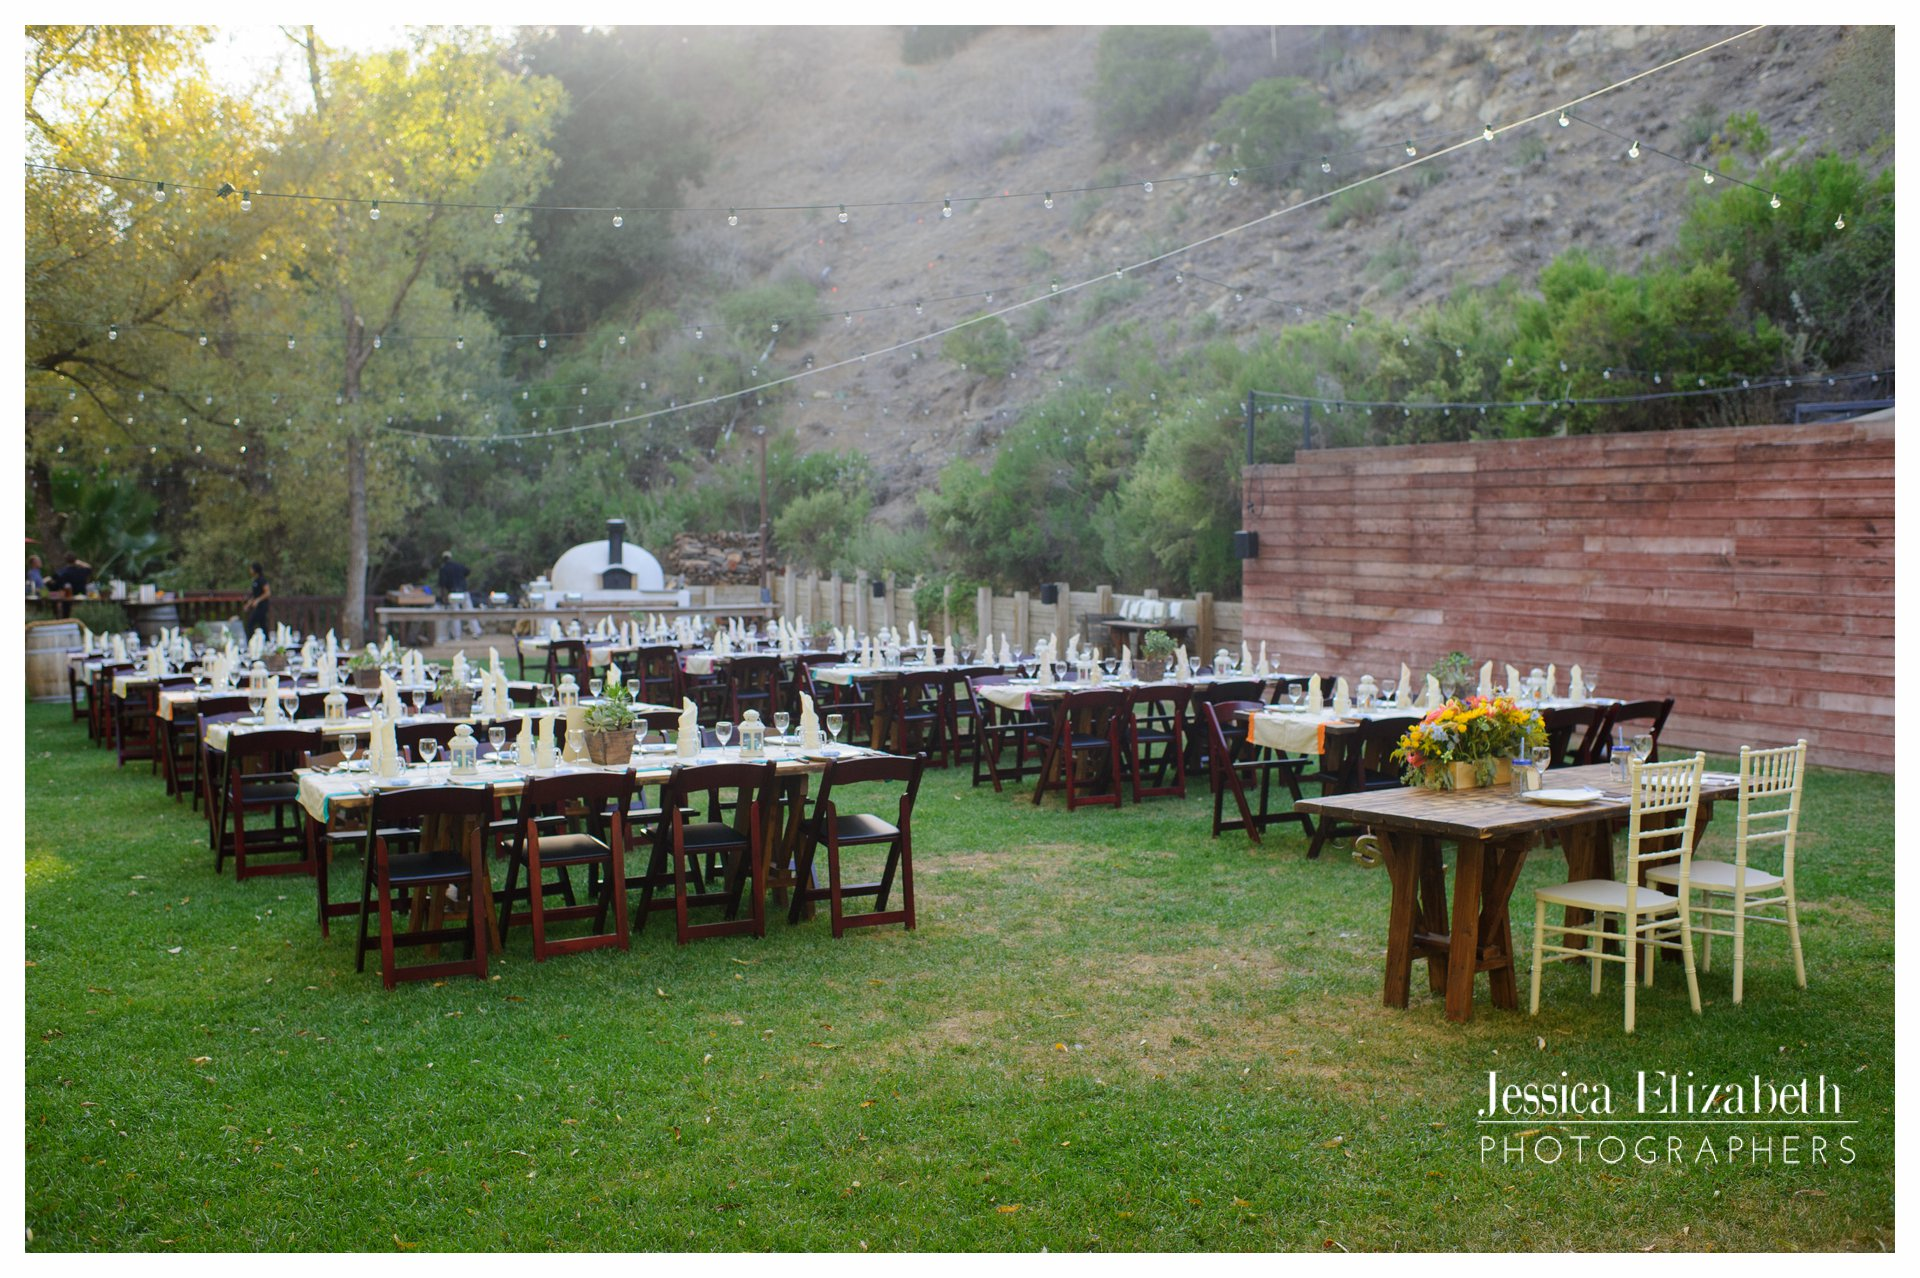 22-The 1909 Malibu Wedding photography by Jessica Elizabeth-w